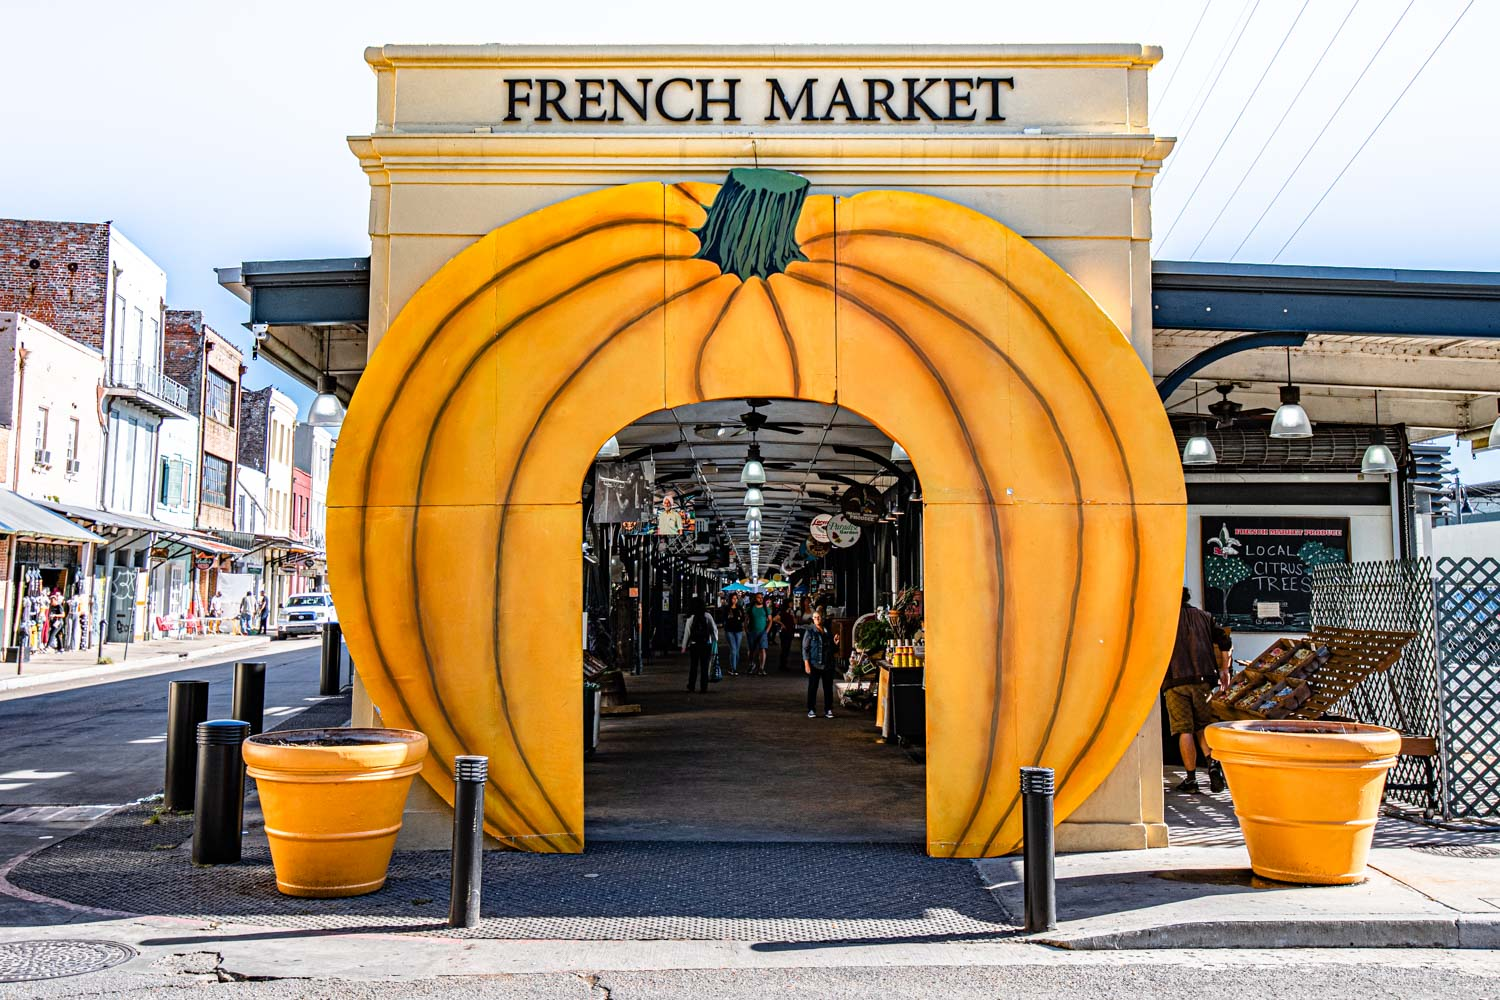 French Market - 2 Days in New Orleans